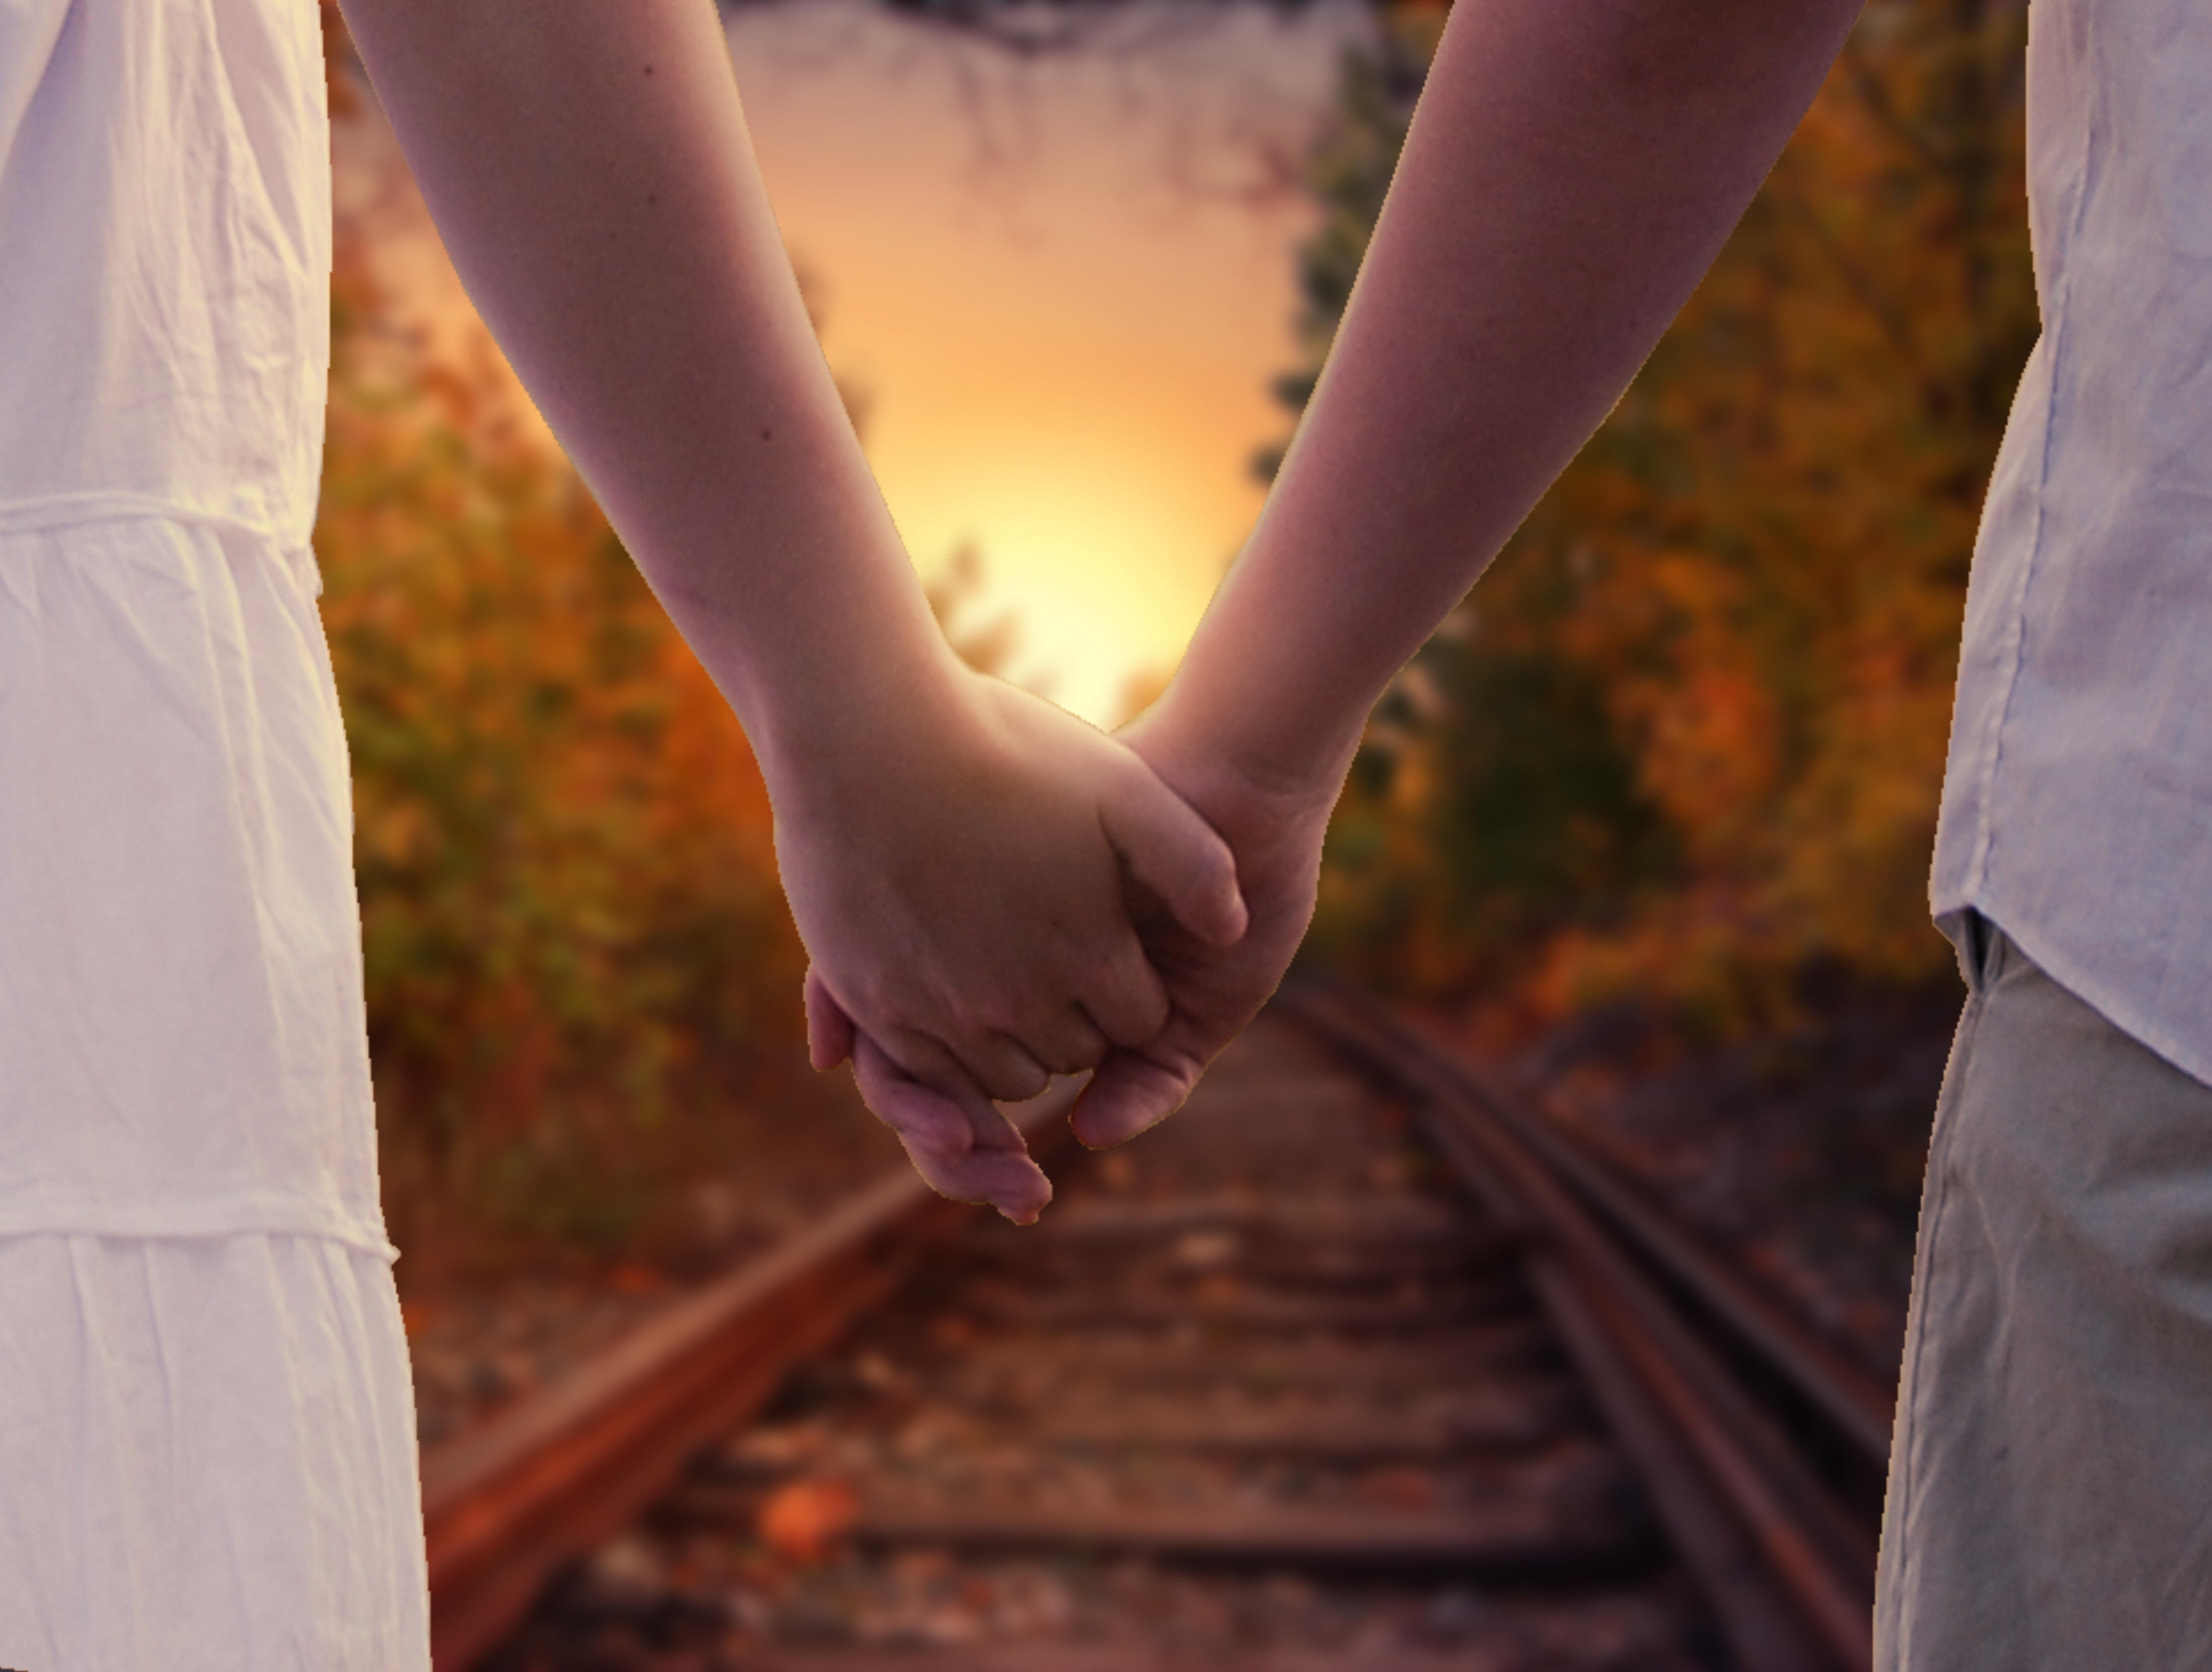 close-up-hands-holding-hands-220419